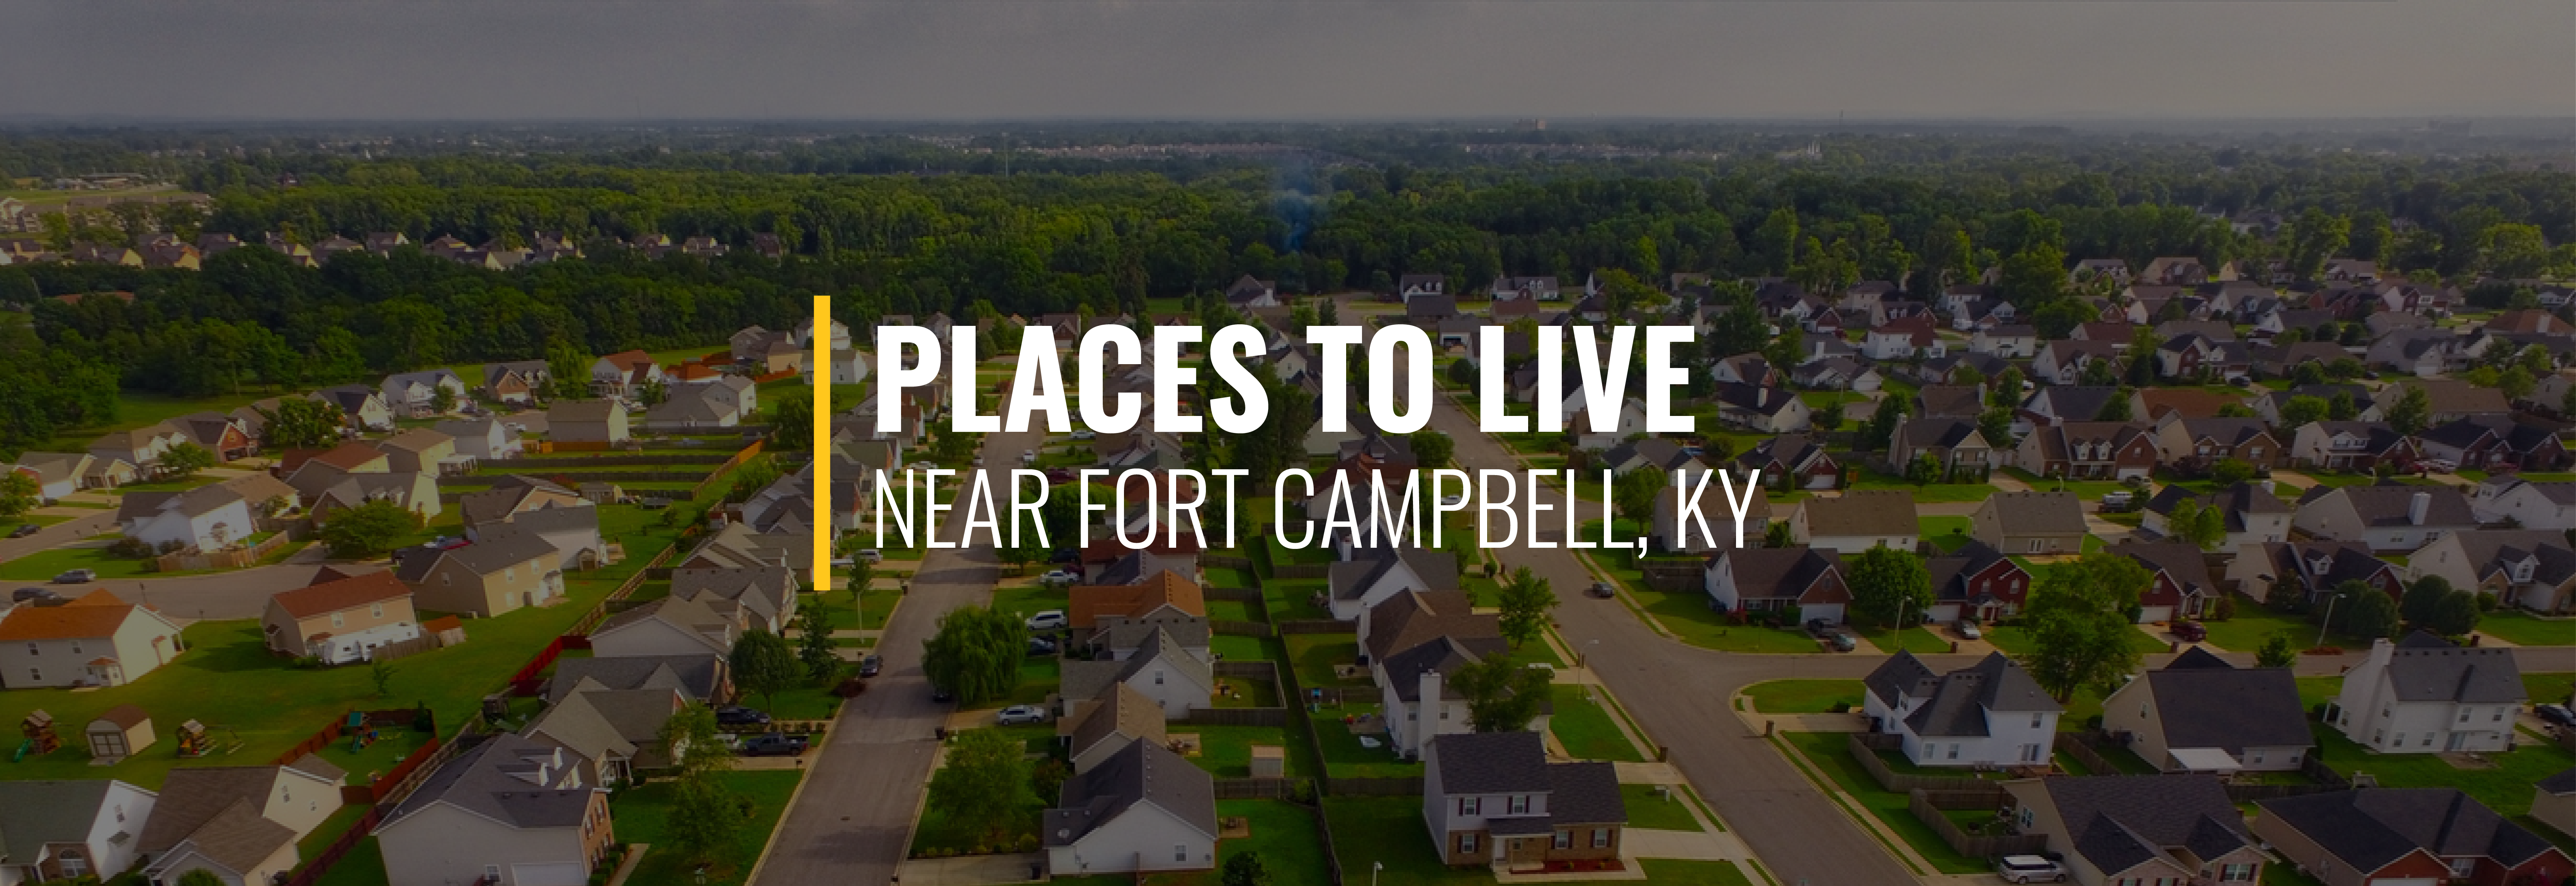 Where Should I Live Near Fort Campbell?